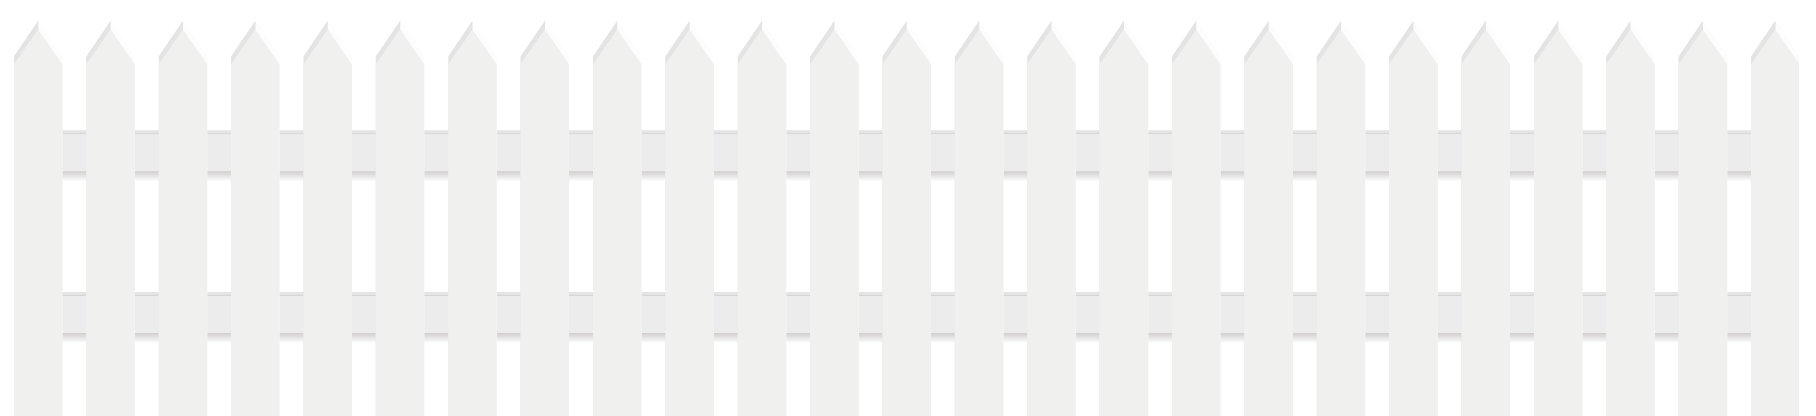 Black picket fence clipart clip royalty free library Free White Fence Cliparts, Download Free Clip Art, Free Clip Art on ... clip royalty free library